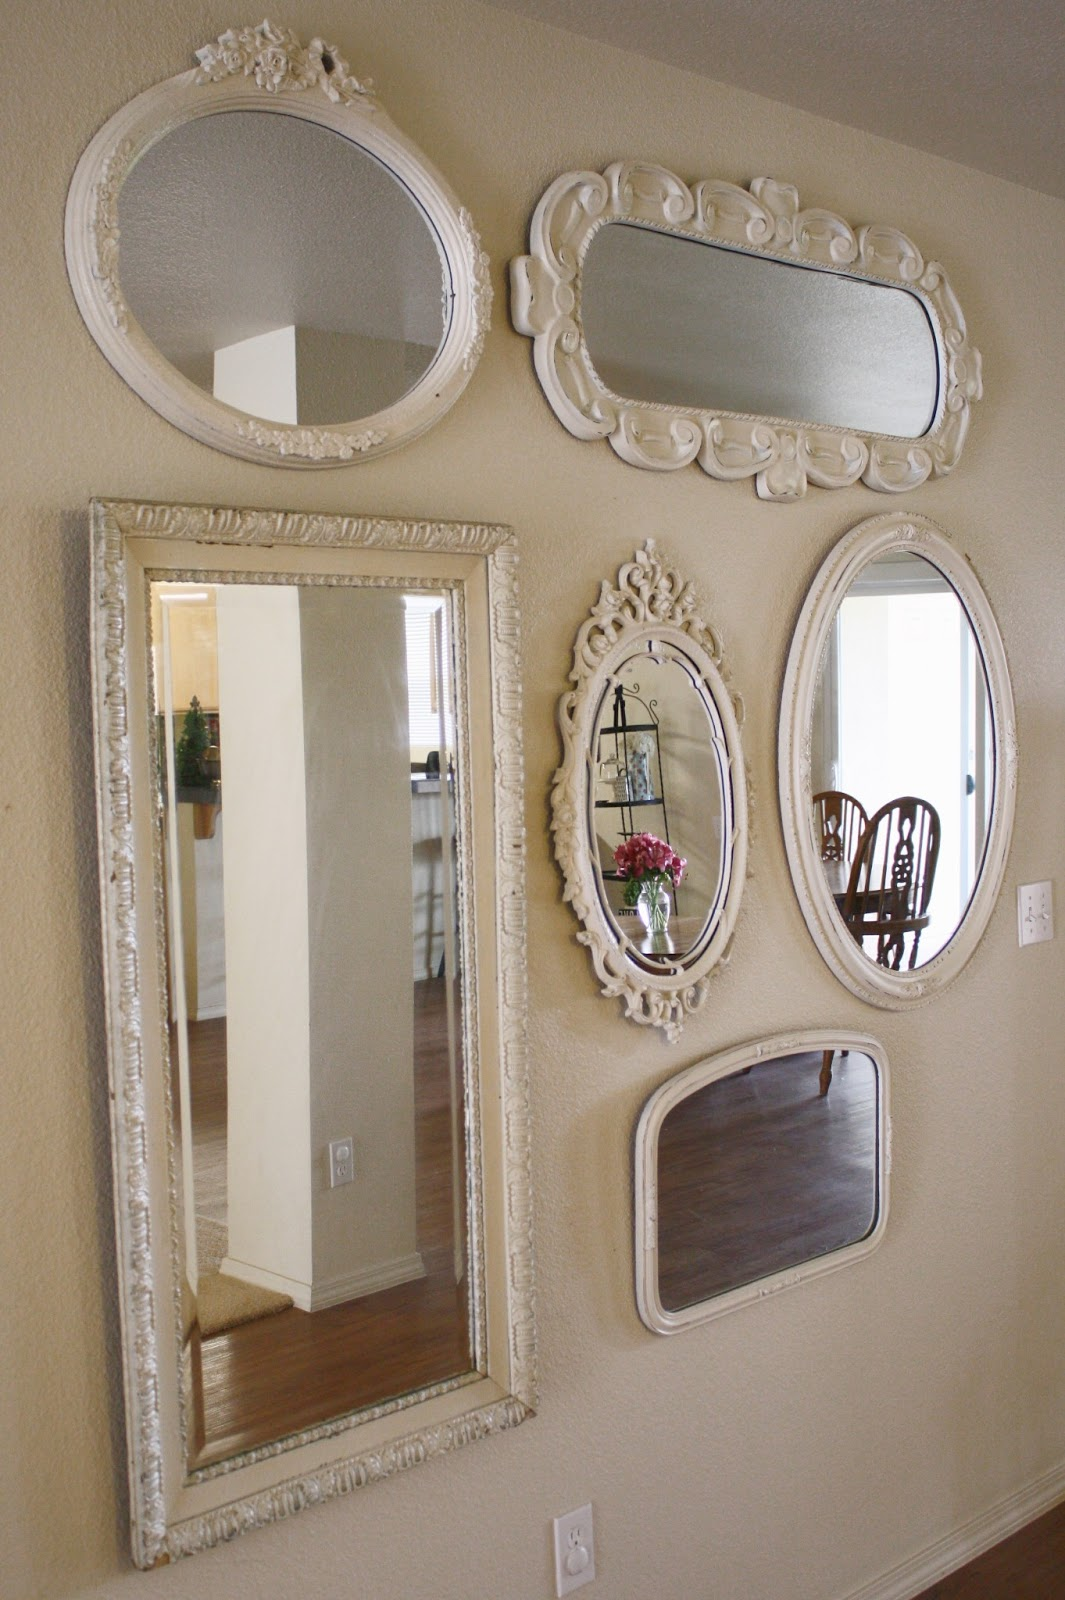 Wall Of Mirrors Designedbykrystleblog